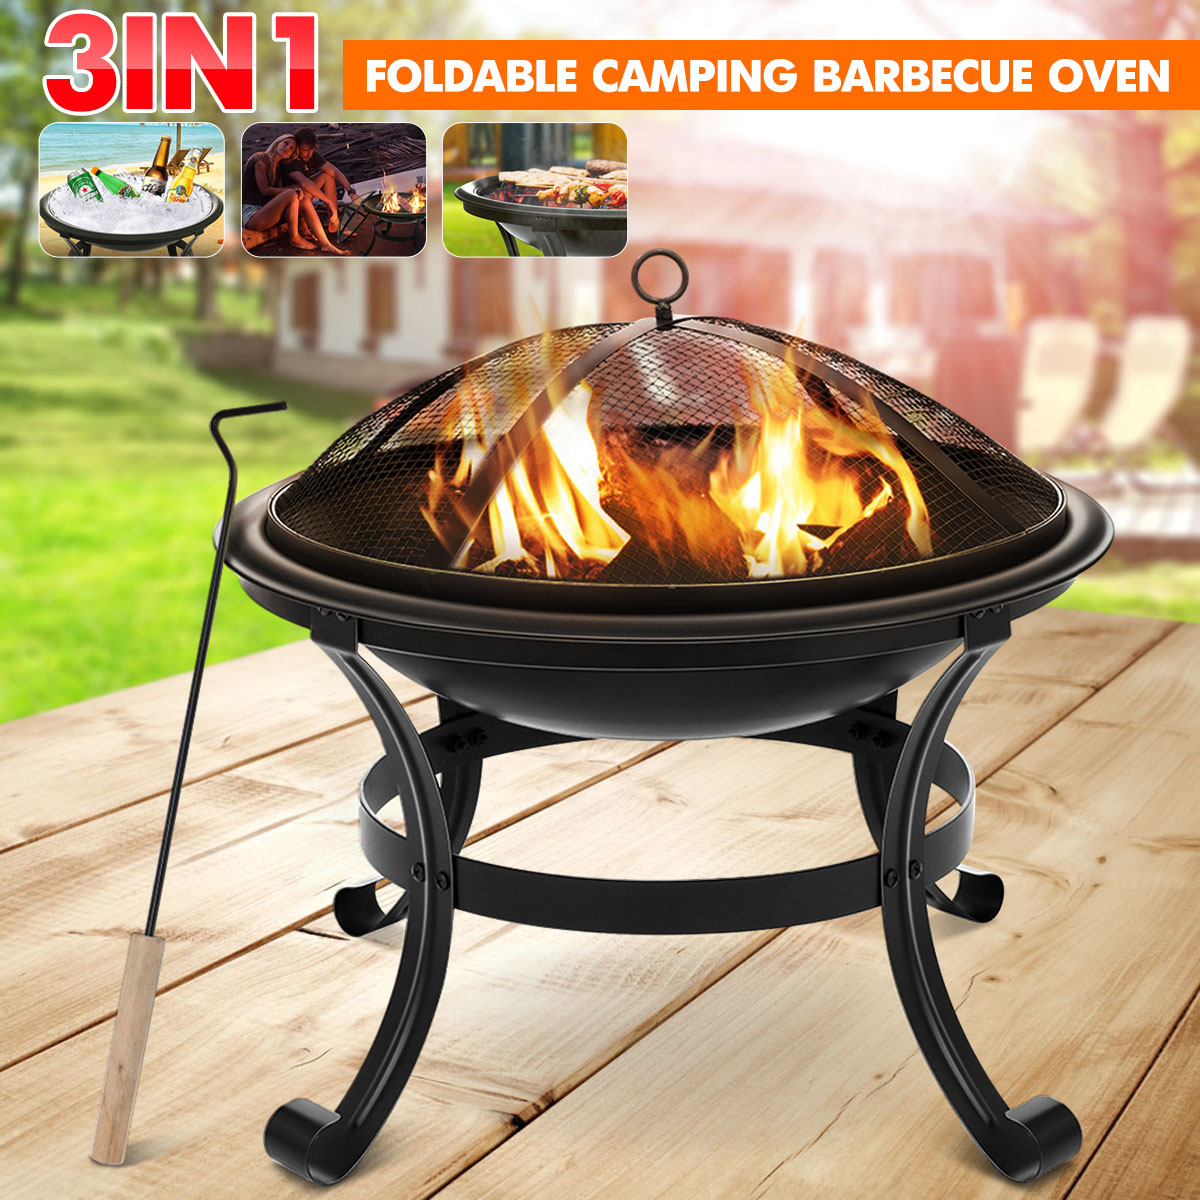 Portable Wood Burning Fire Pits Curved Feet Brazier Decoration for Backyard Poolside 100% Iron Black Courtyard Metal Fire Bowl